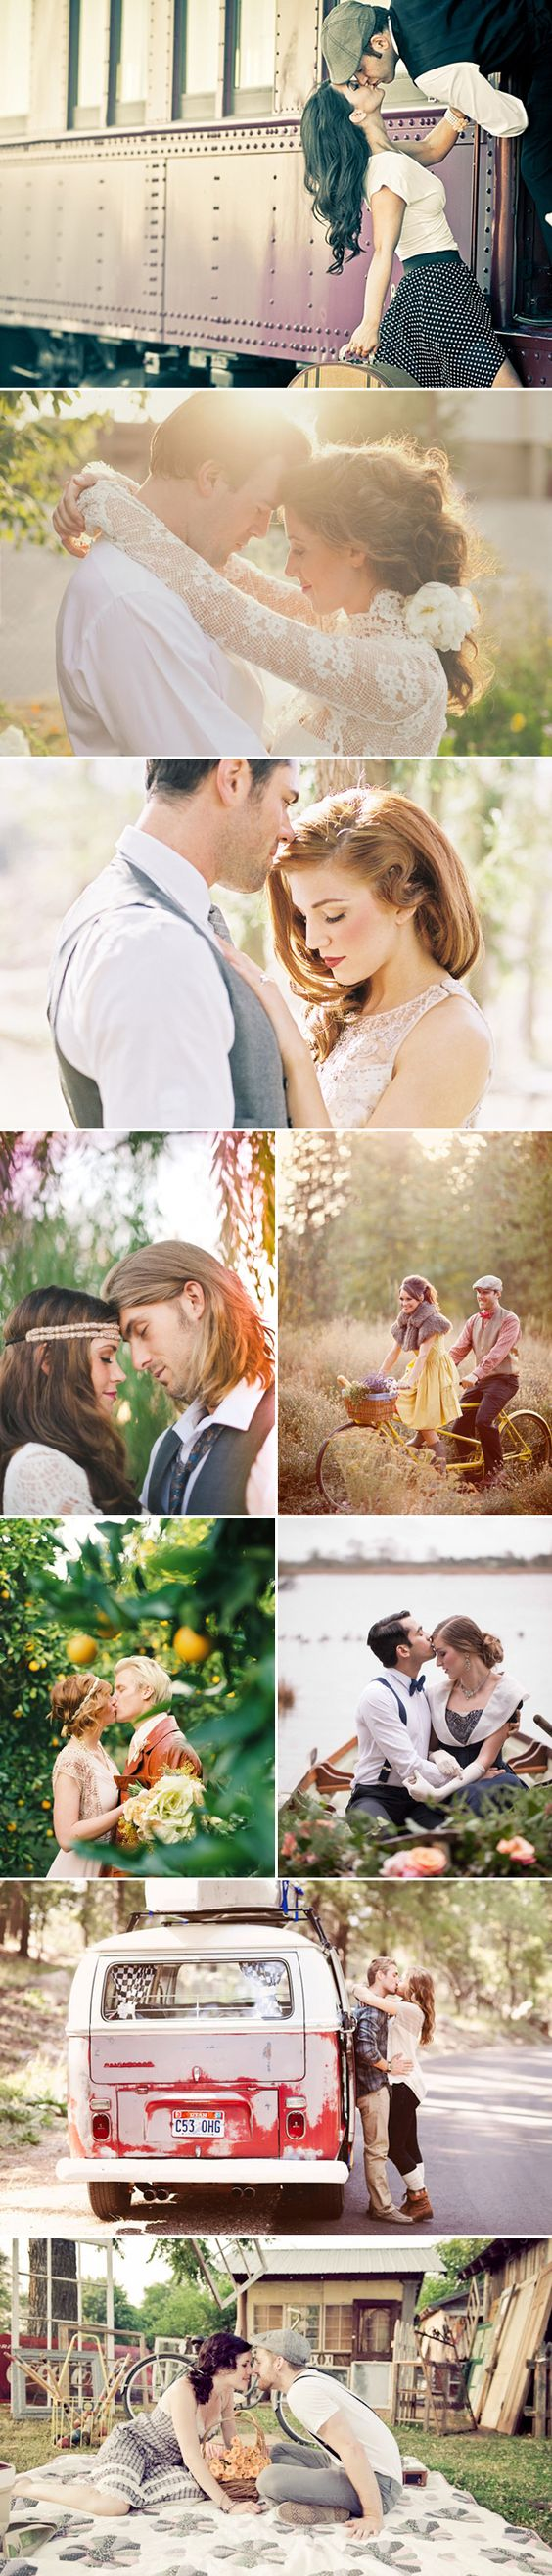 Vintage-inspired engagement photos via @praisewedding #PerfectPoses